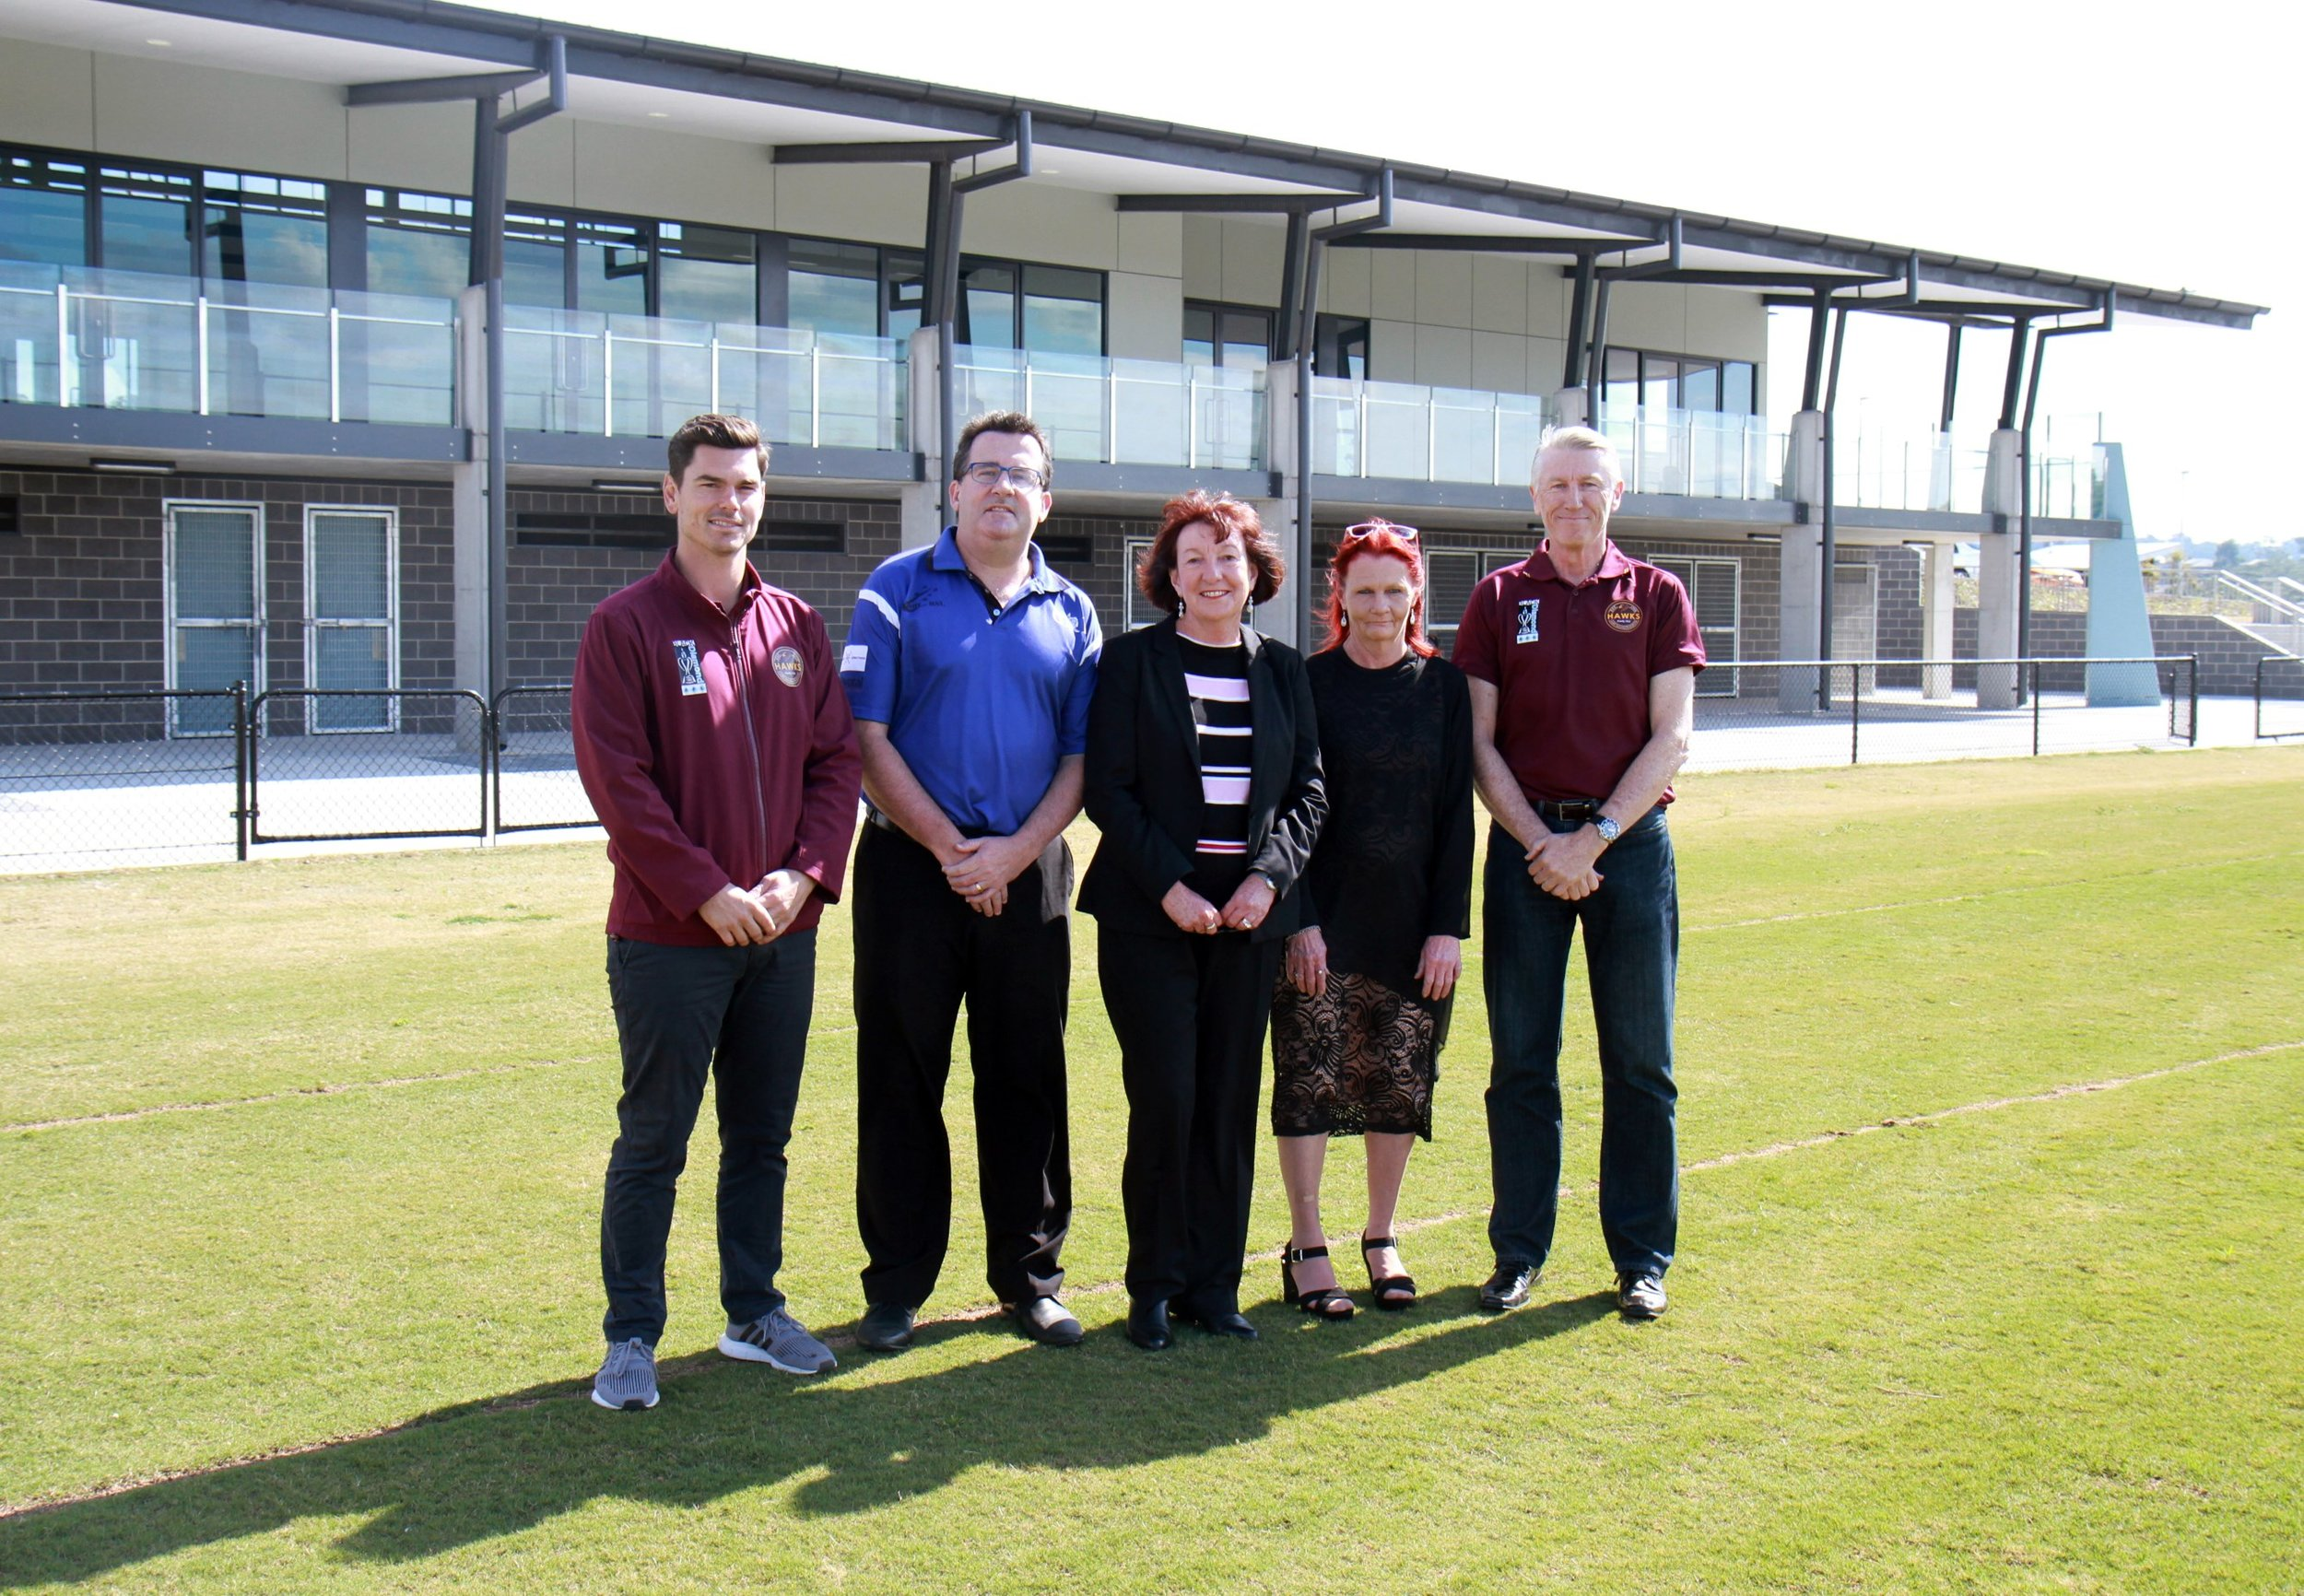 L-R: Cardiff Hawks President Quinton Davis, Cardiff Boolaroo District Cricket Club President Matthew Maher, Mayor of Lake Macquarie Cr Kay Fraser, Annette Pasterfield and Cardiff Hawks Secretary Peter Risby